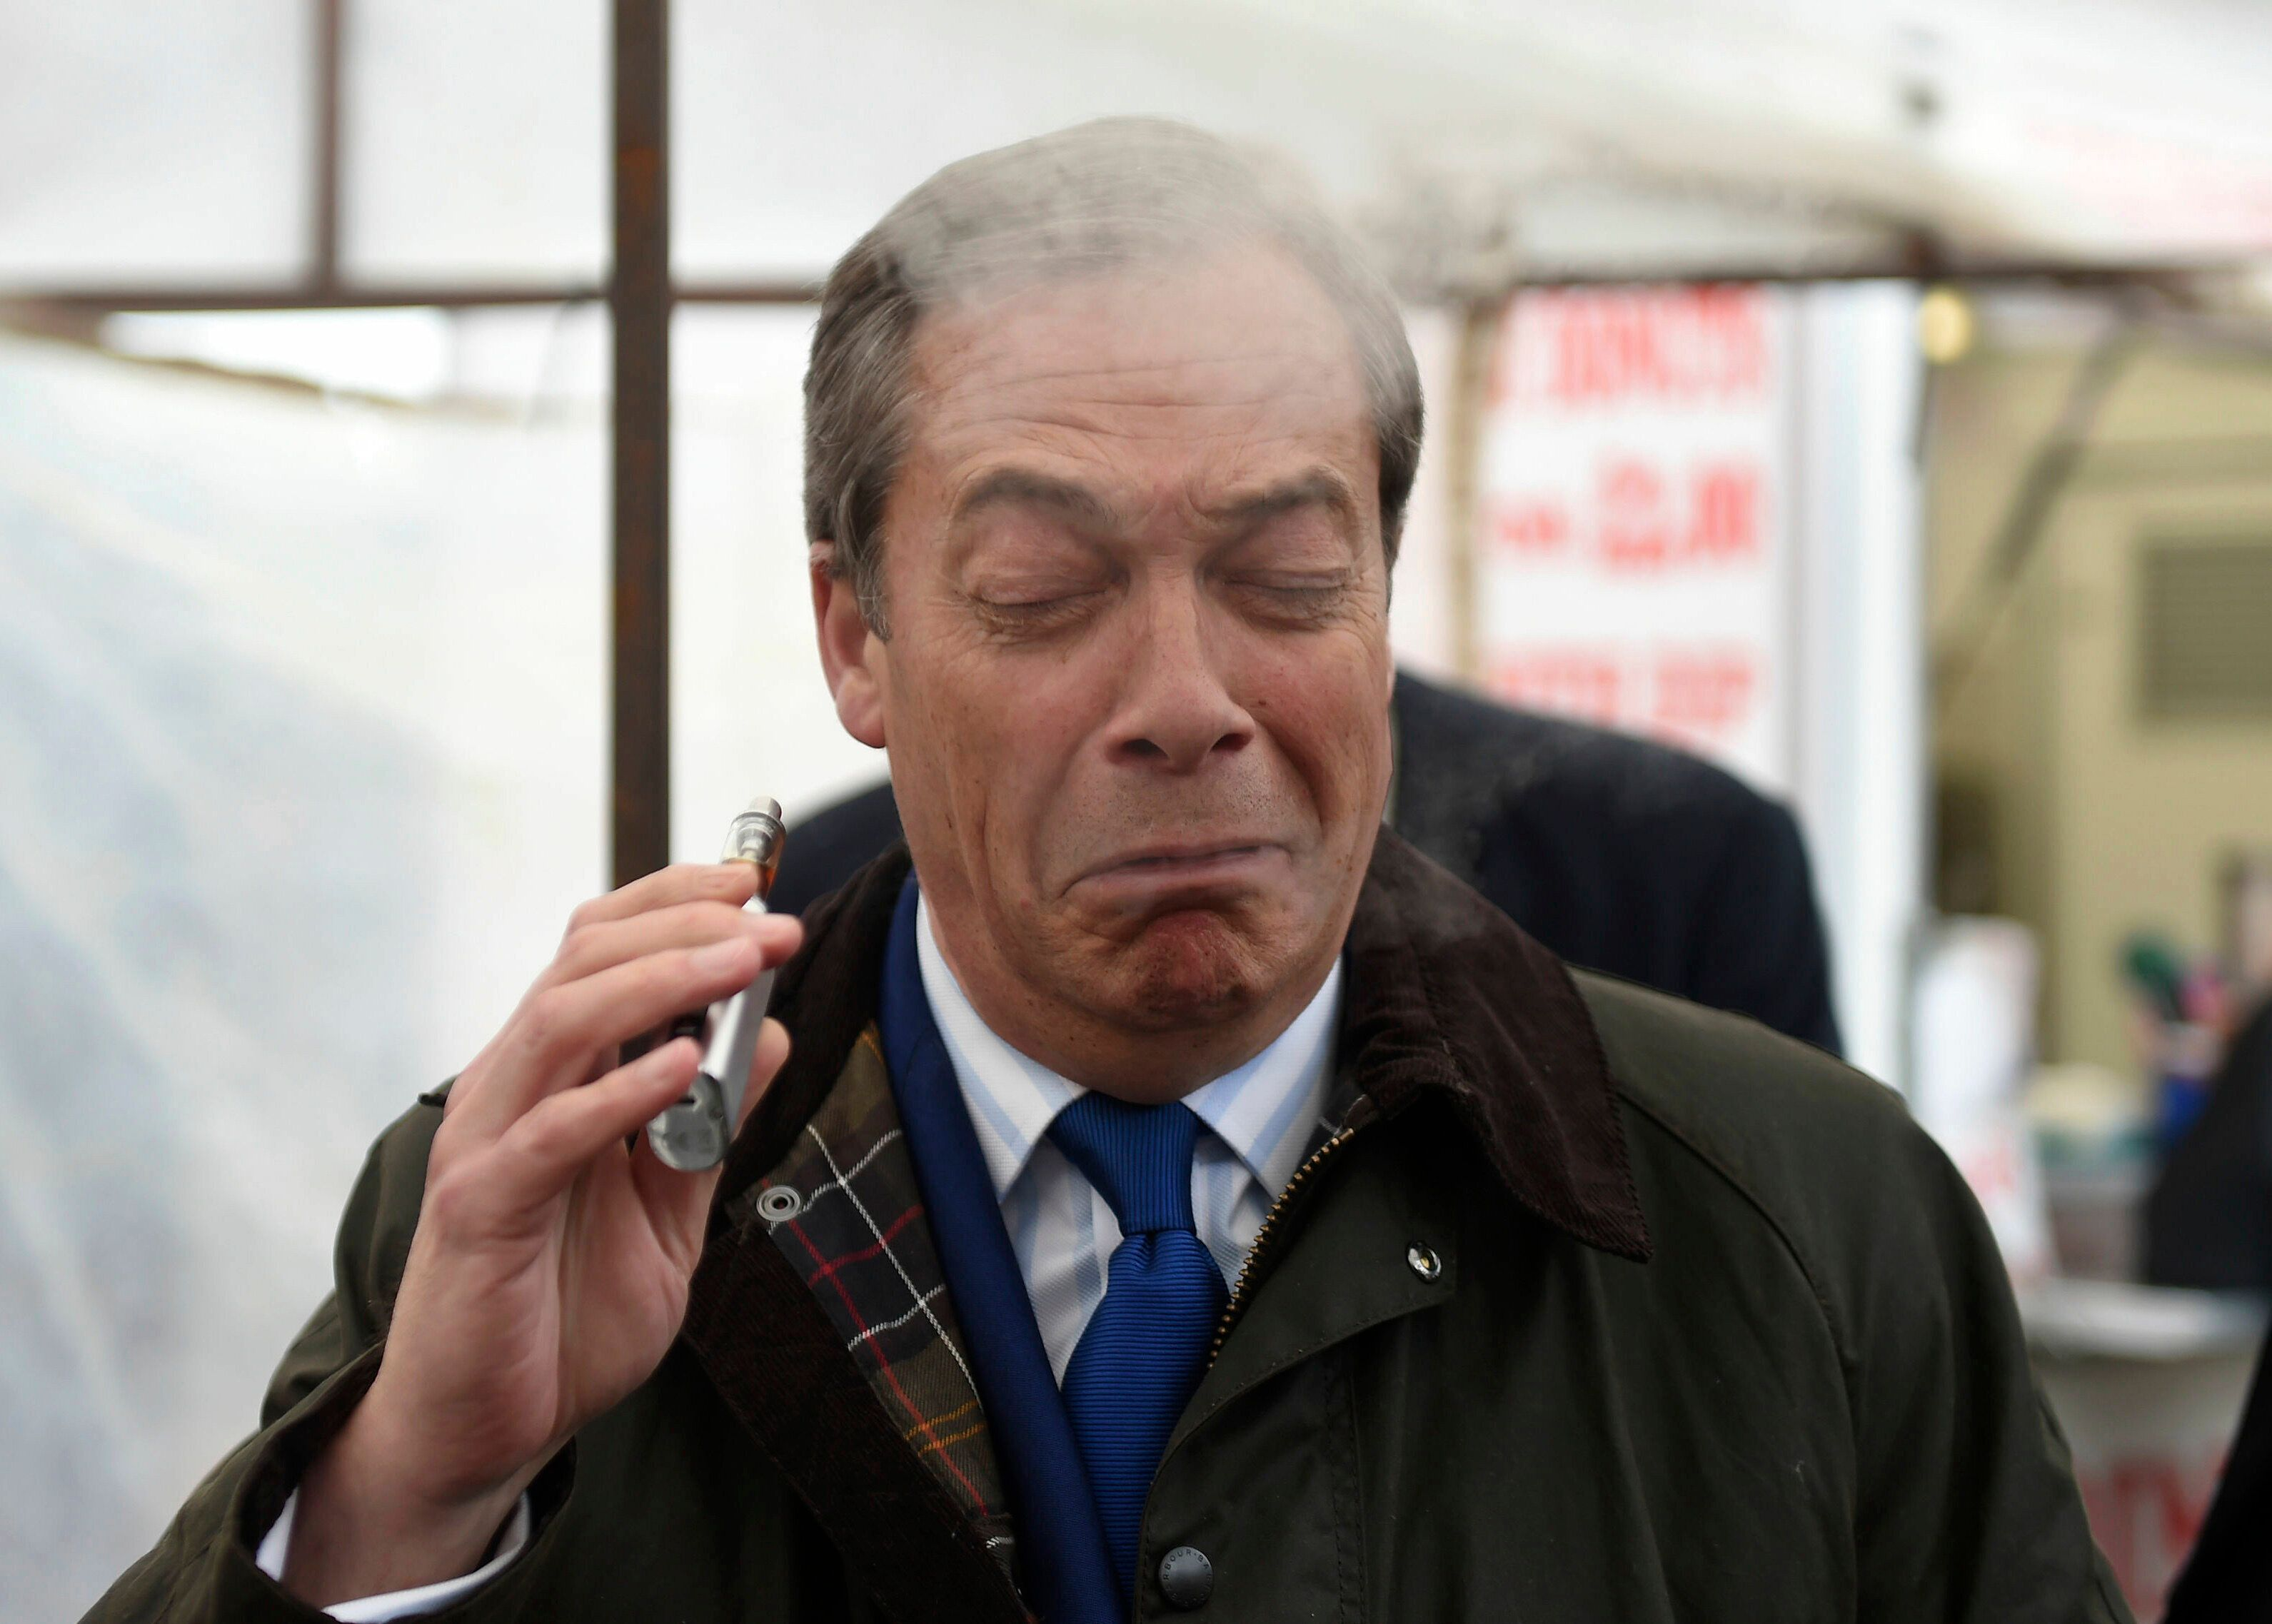 Brexit Party leader Nigel Farage coughs as he samples a Pinkman flavoured e-cigarette during a Brexit Party walkabout in Lincoln, England, Friday May 10, 2019. (Joe Giddens/PA via AP)